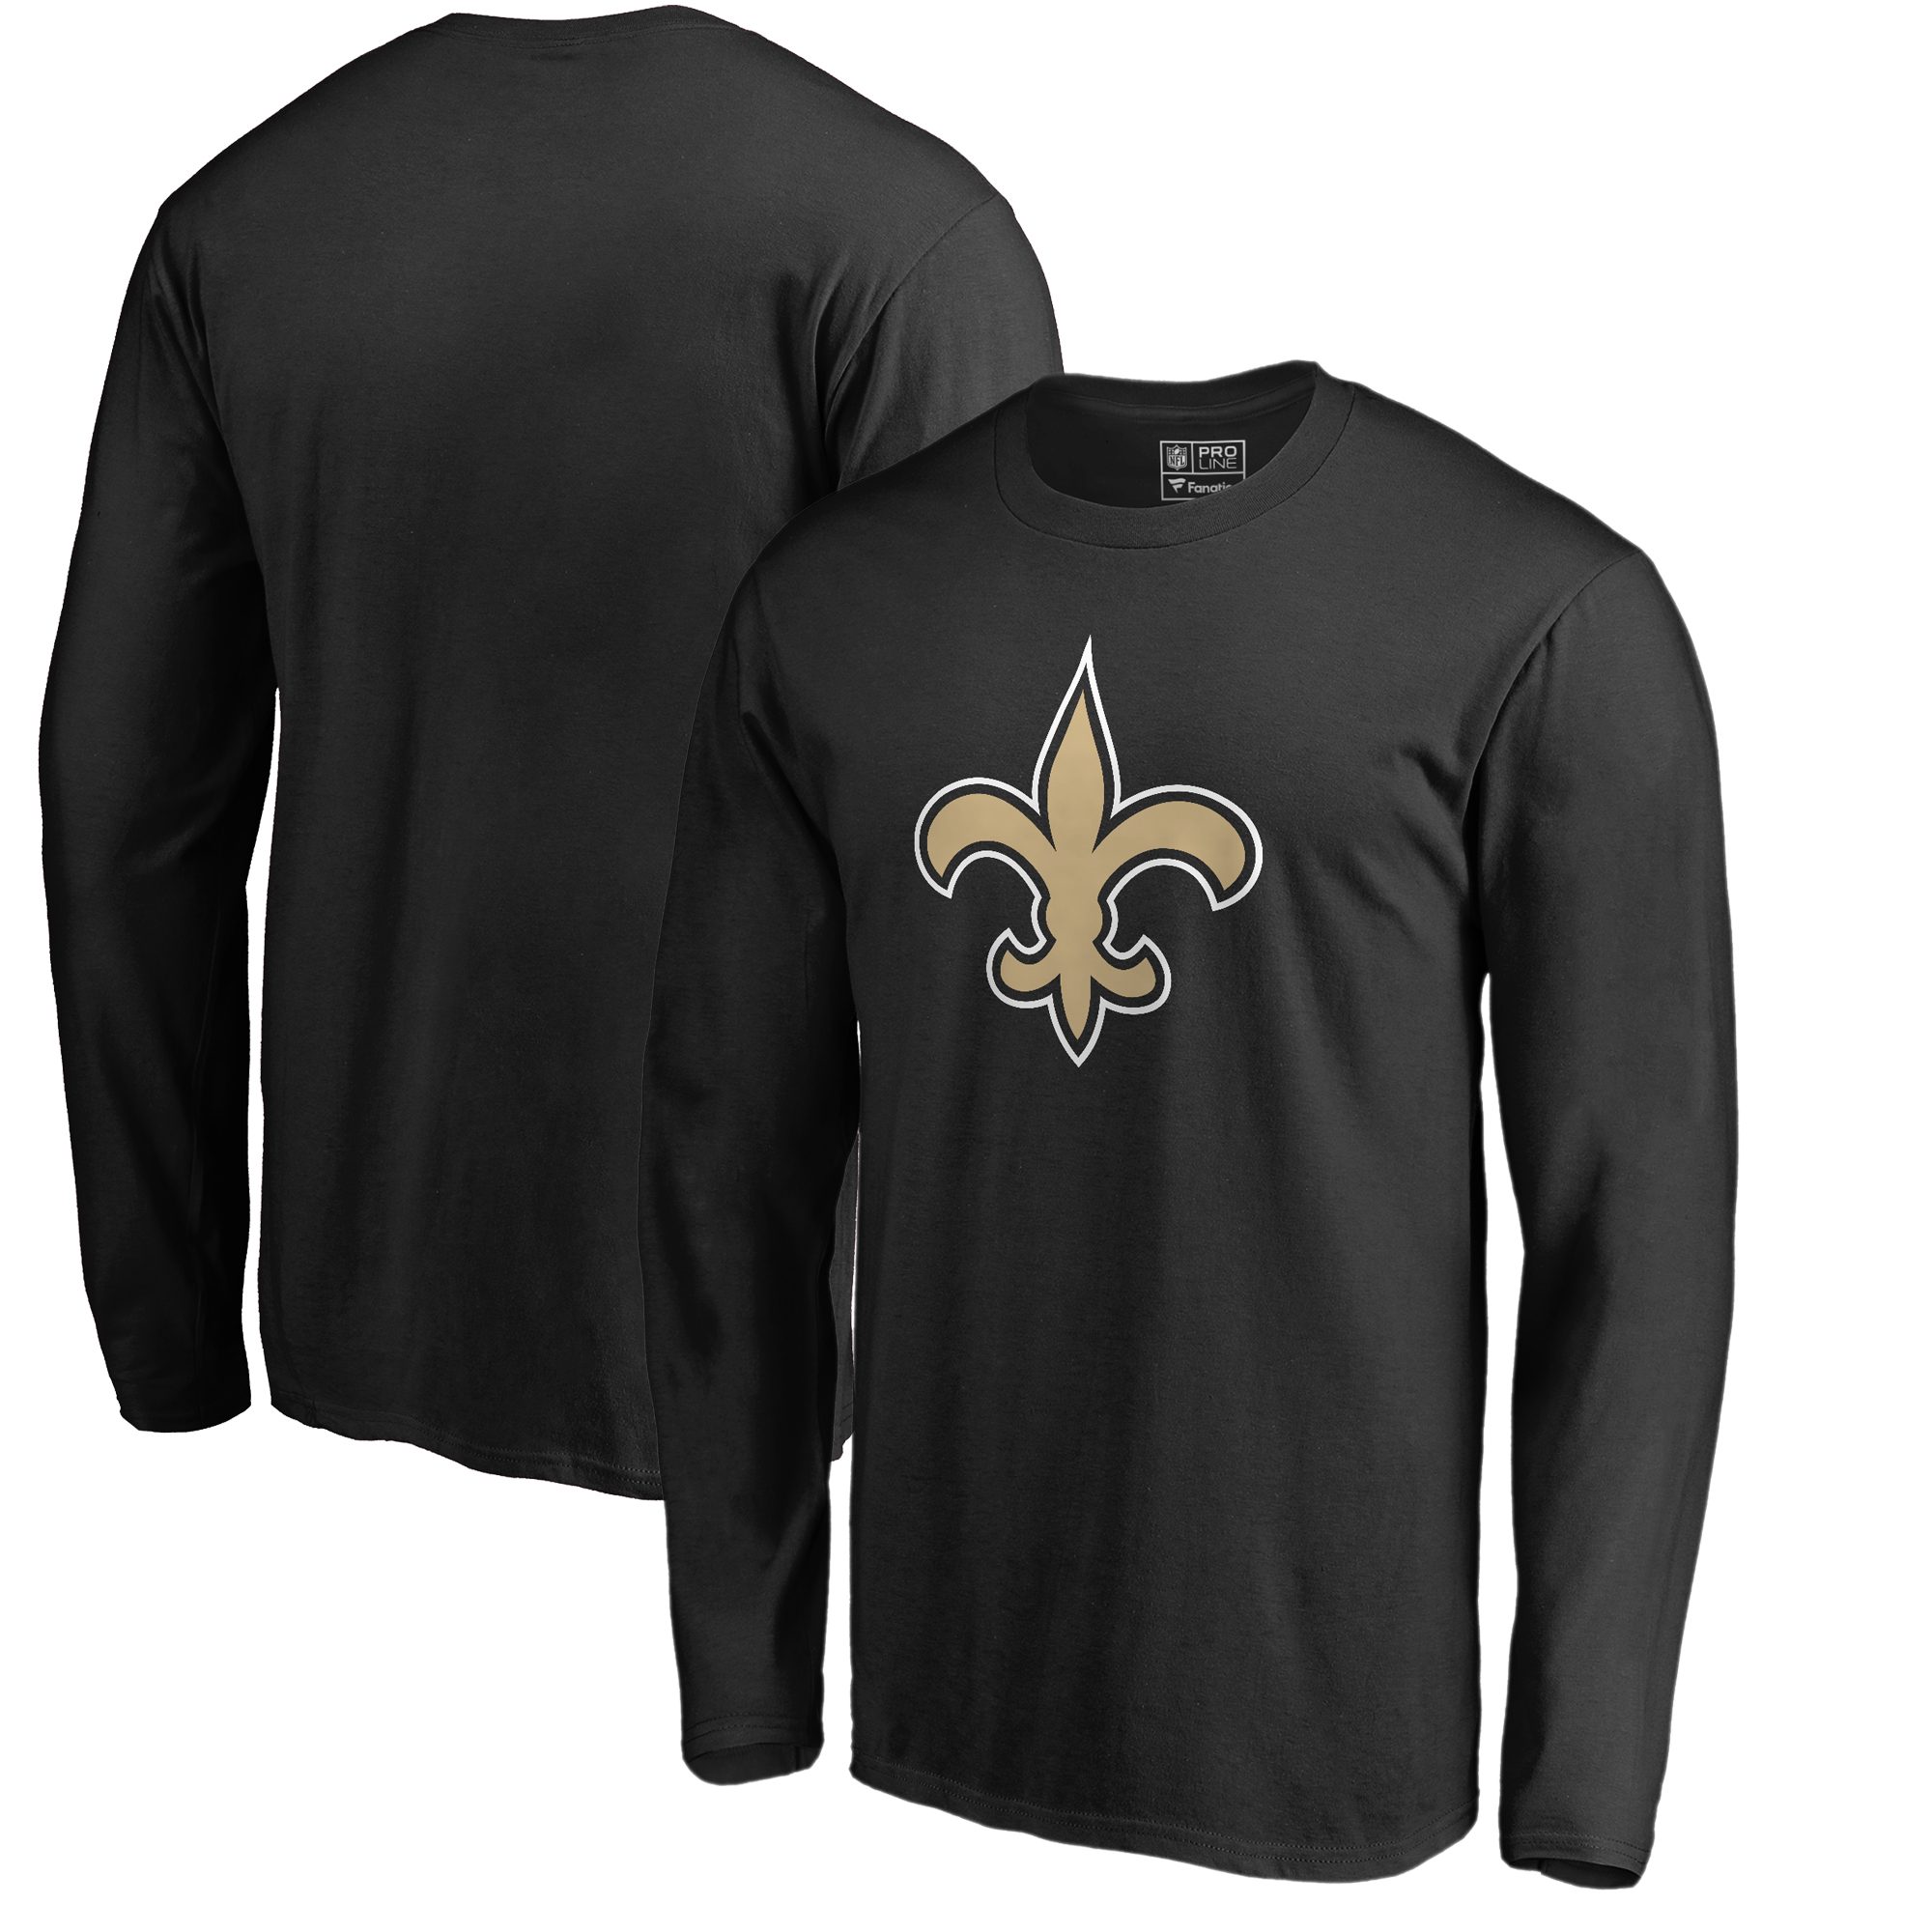 New Orleans Saints NFL Pro Line by Fanatics Branded Primary Logo Long-Sleeve T-Shirt - Black